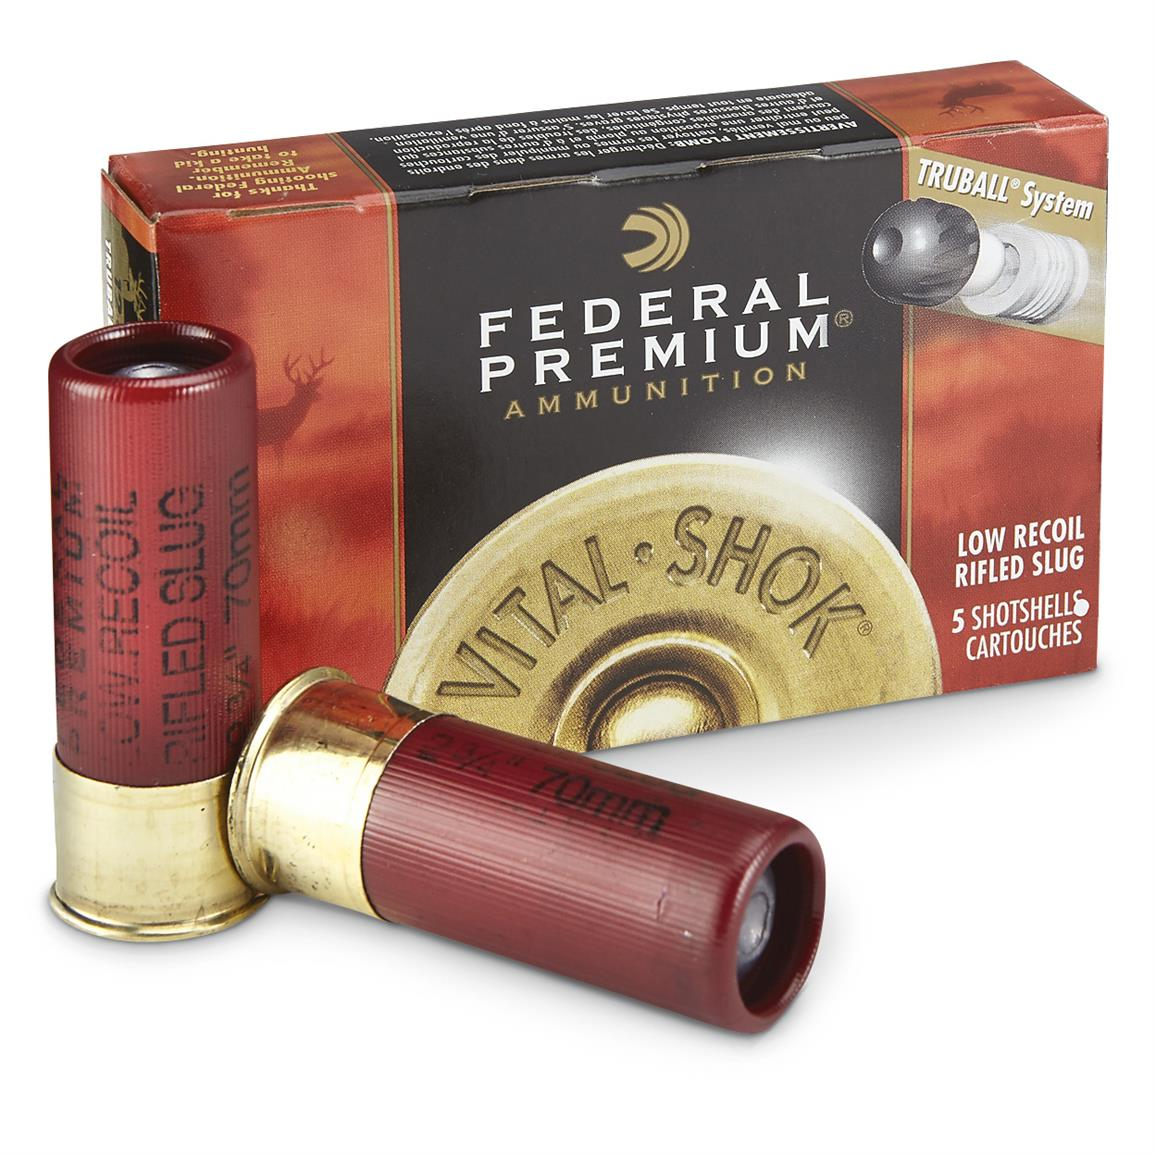 "Federal Truball, 12 Gauge, 2 3/4"", 1 oz. Slugs, 5 Rounds"